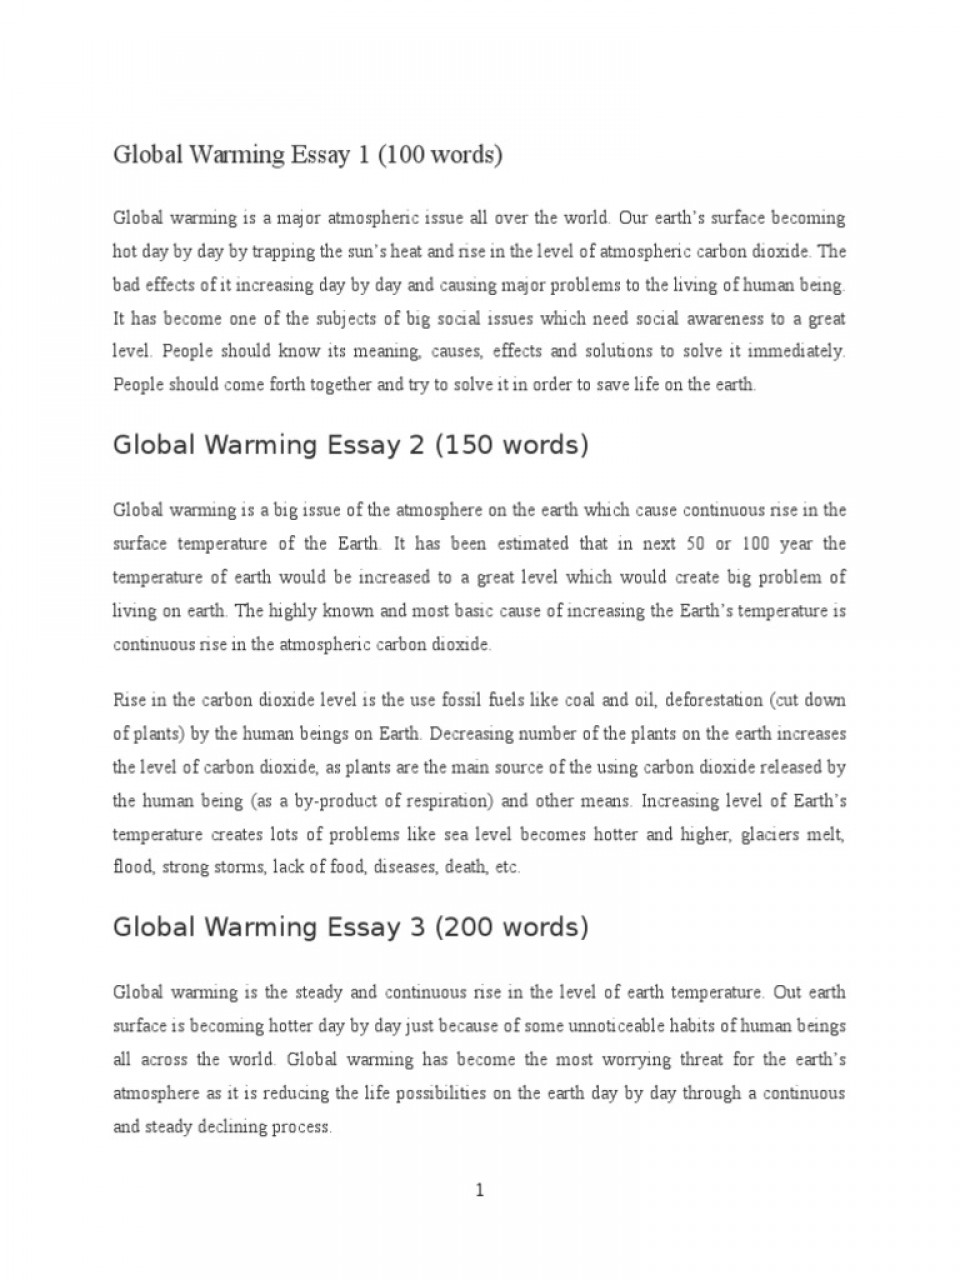 008 Global Warming Essay 1 5882e593b6d87f85288b46ba Unusual Hook Conclusion Outline 960